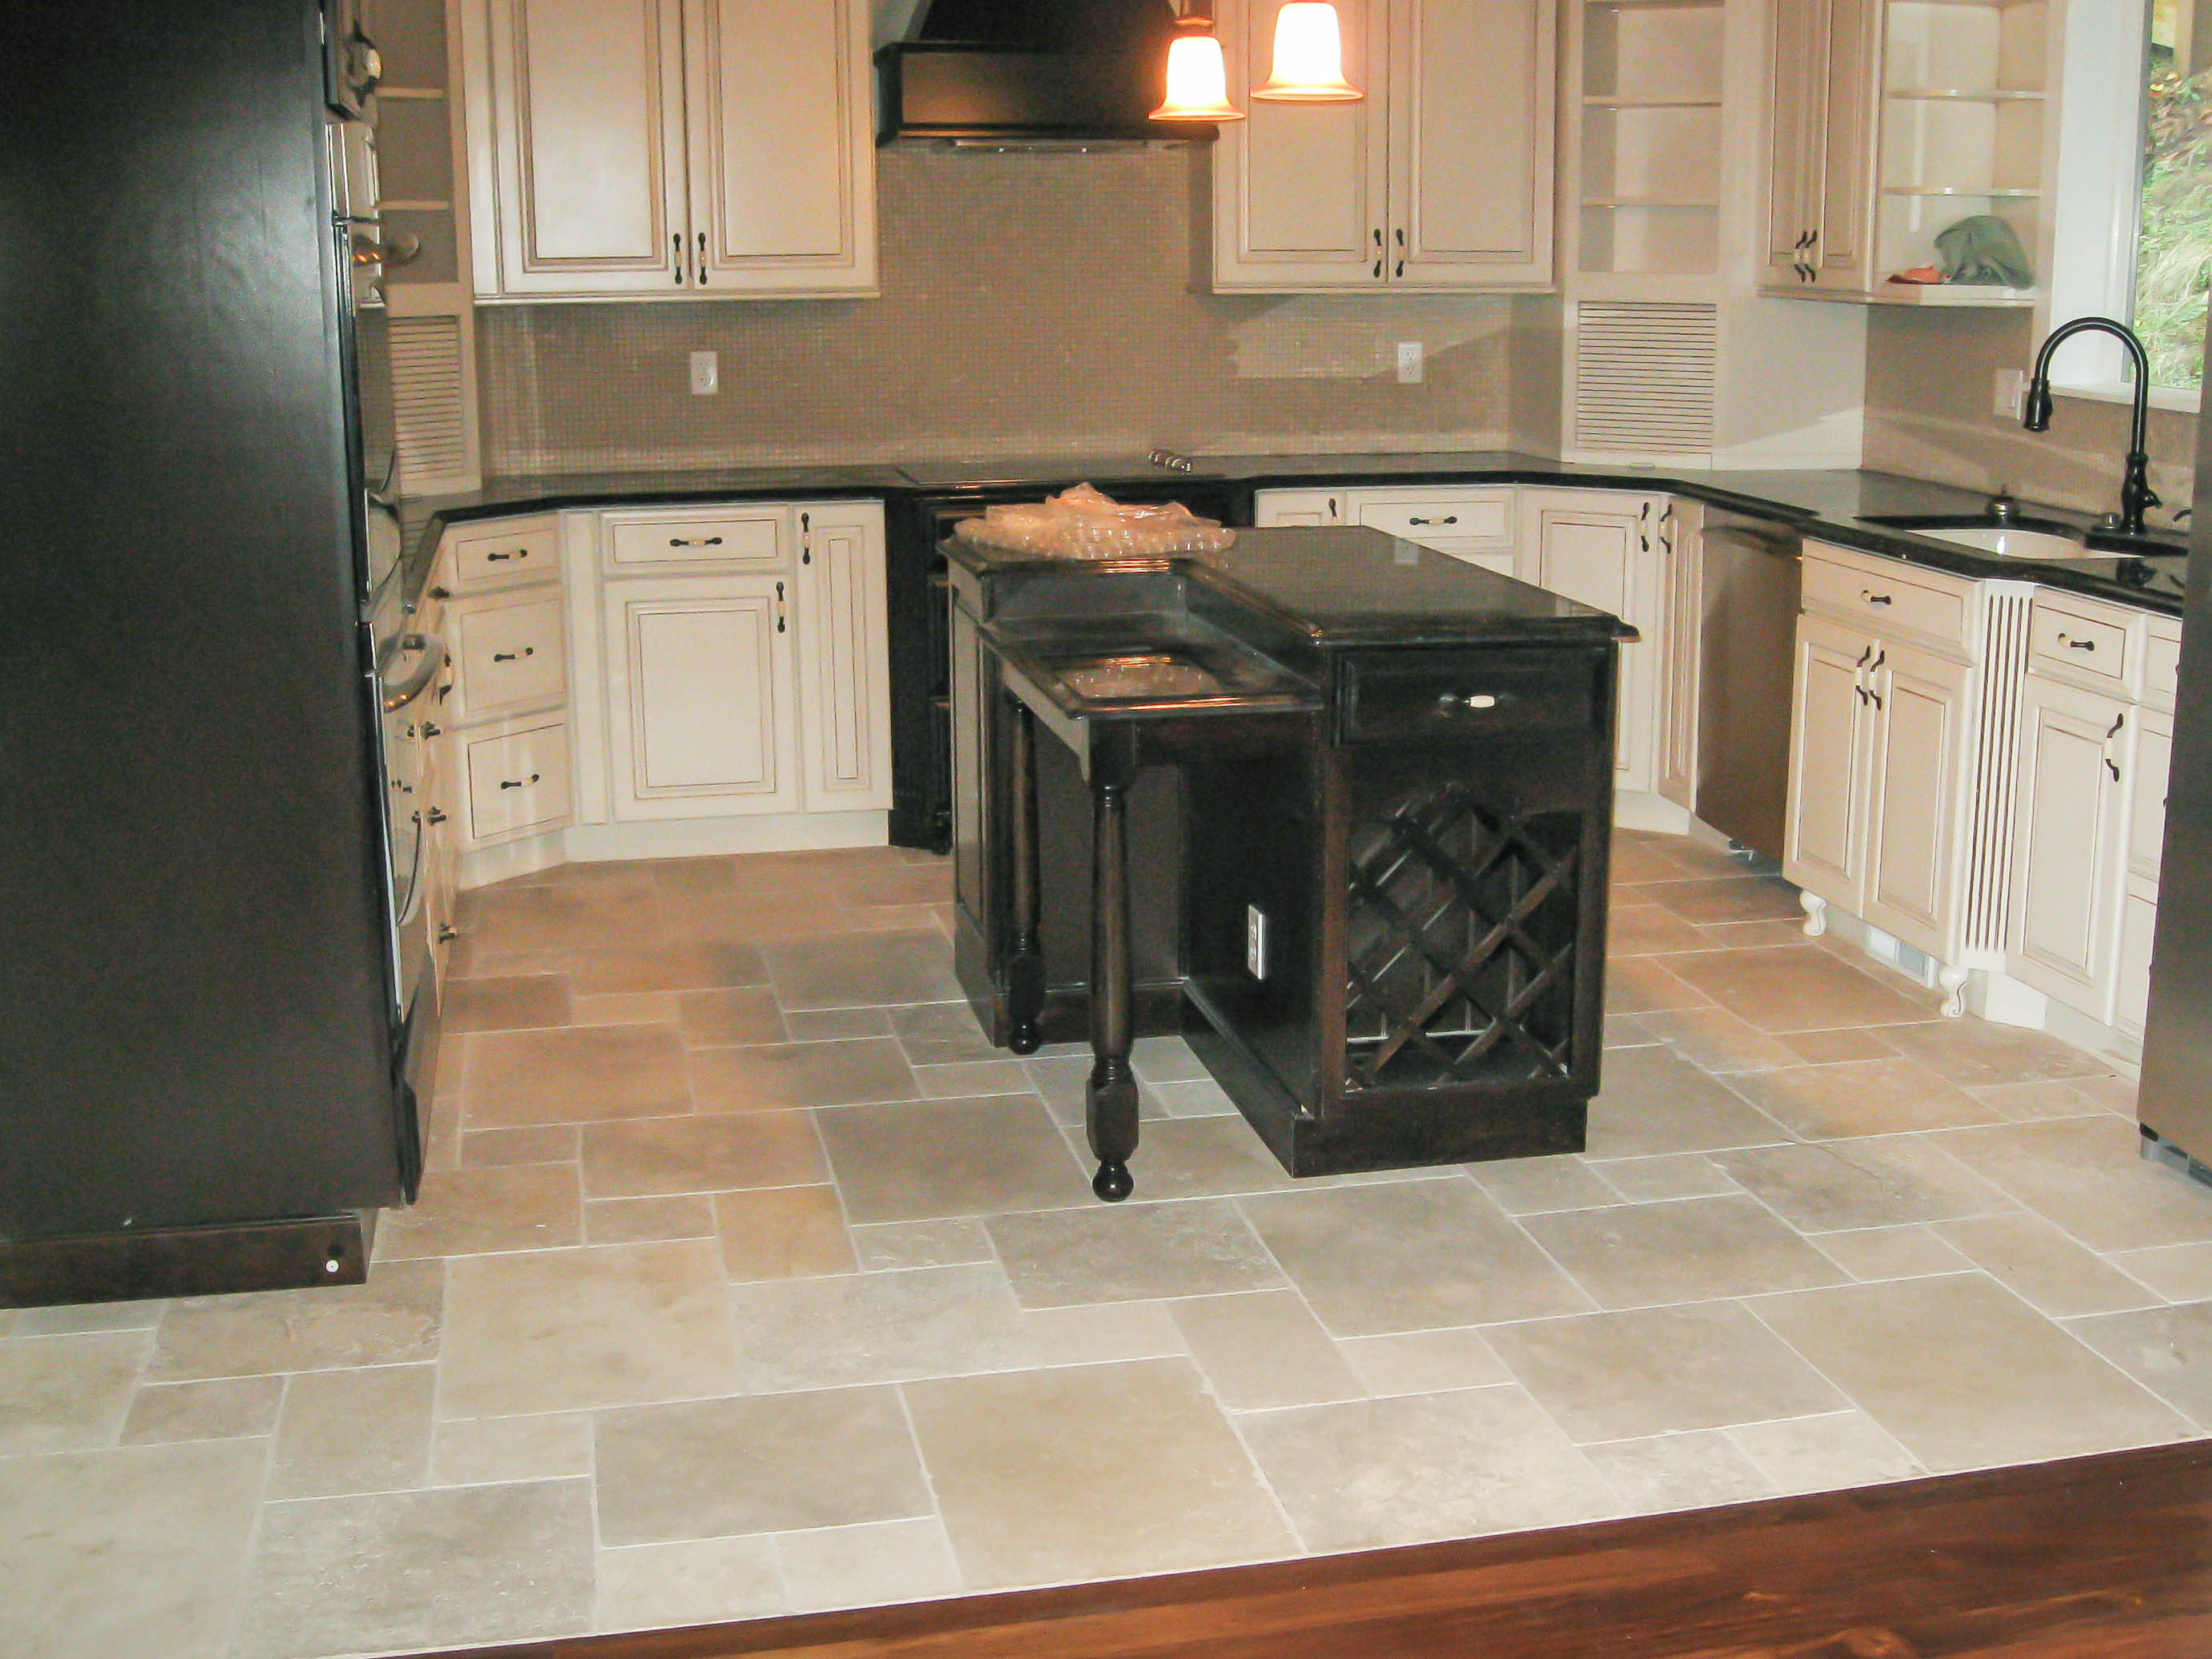 Kitchen Floor Marble kitchen floors gallery - seattle tile contractor | irc tile services